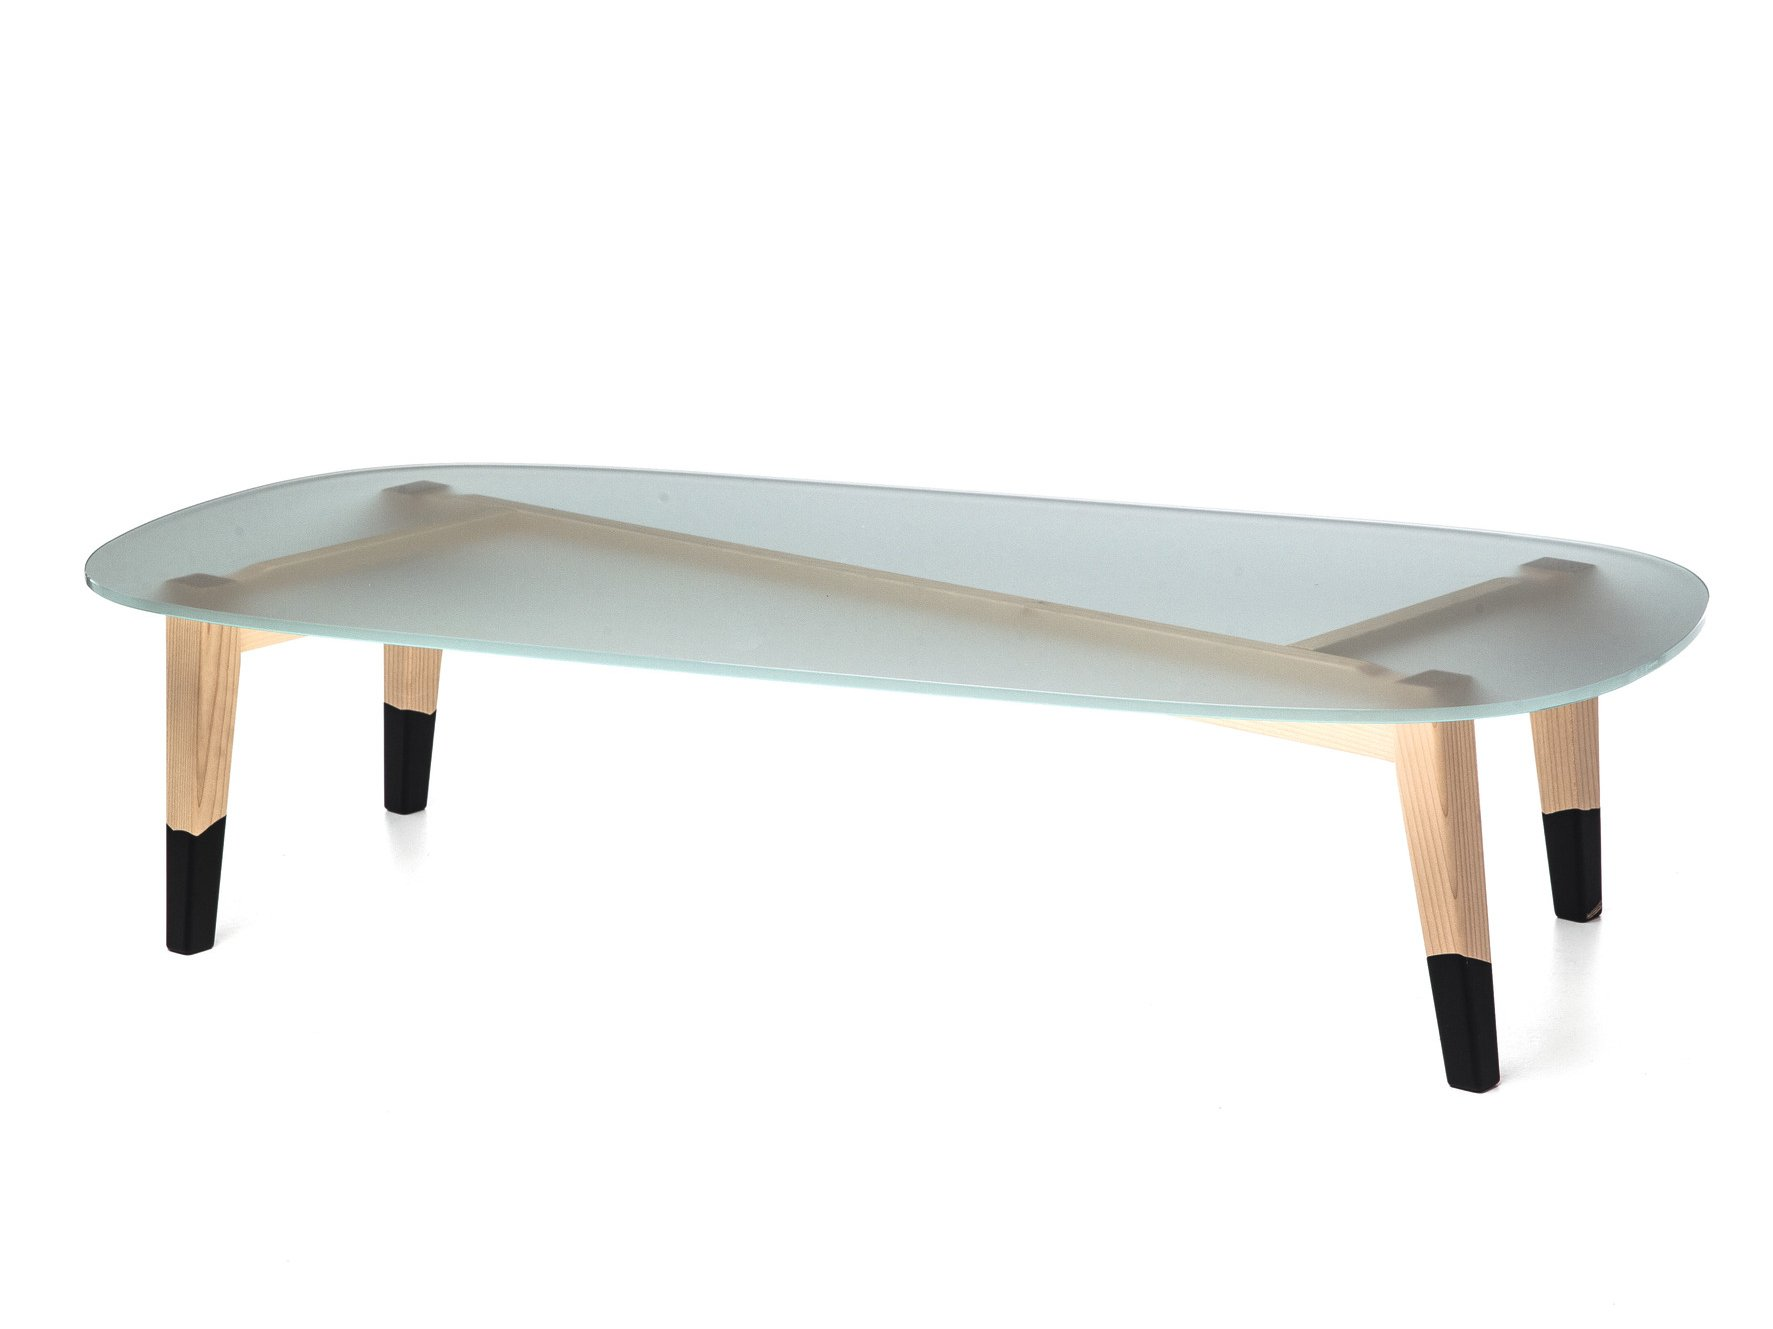 Low rectangular tempered glass coffee table next 47 next for Tempered glass coffee table